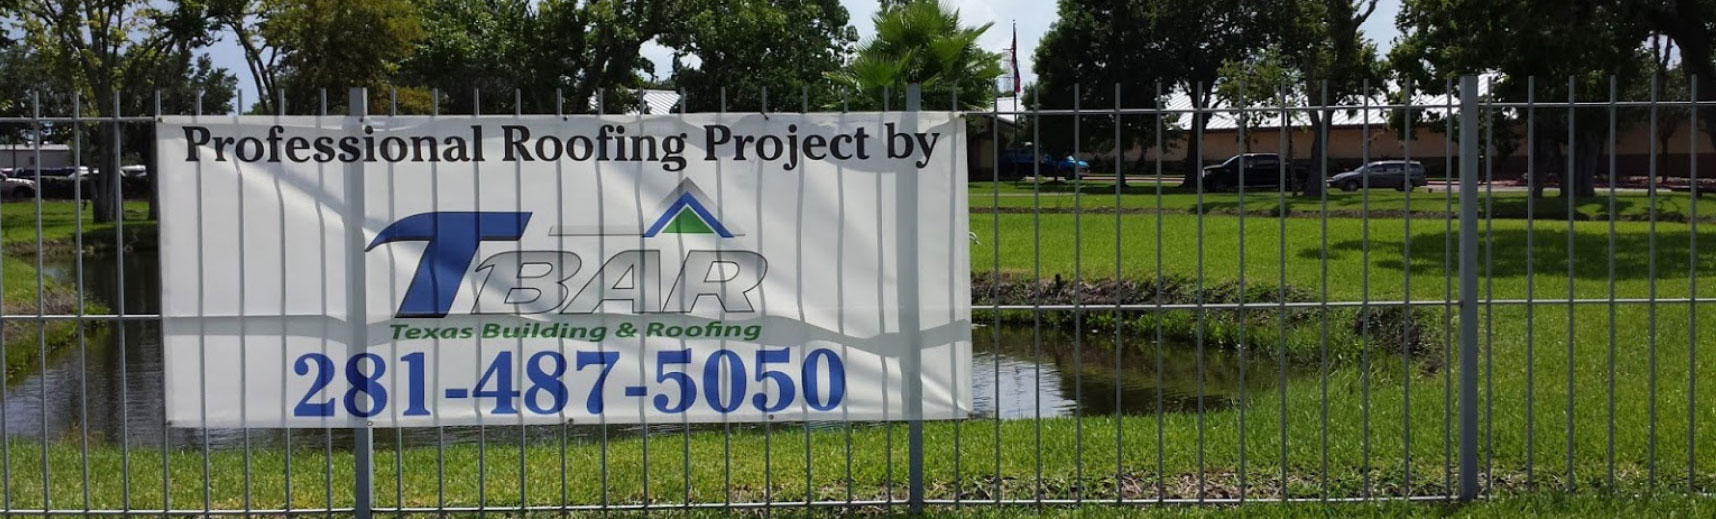 Professional Roofing Project By TBar